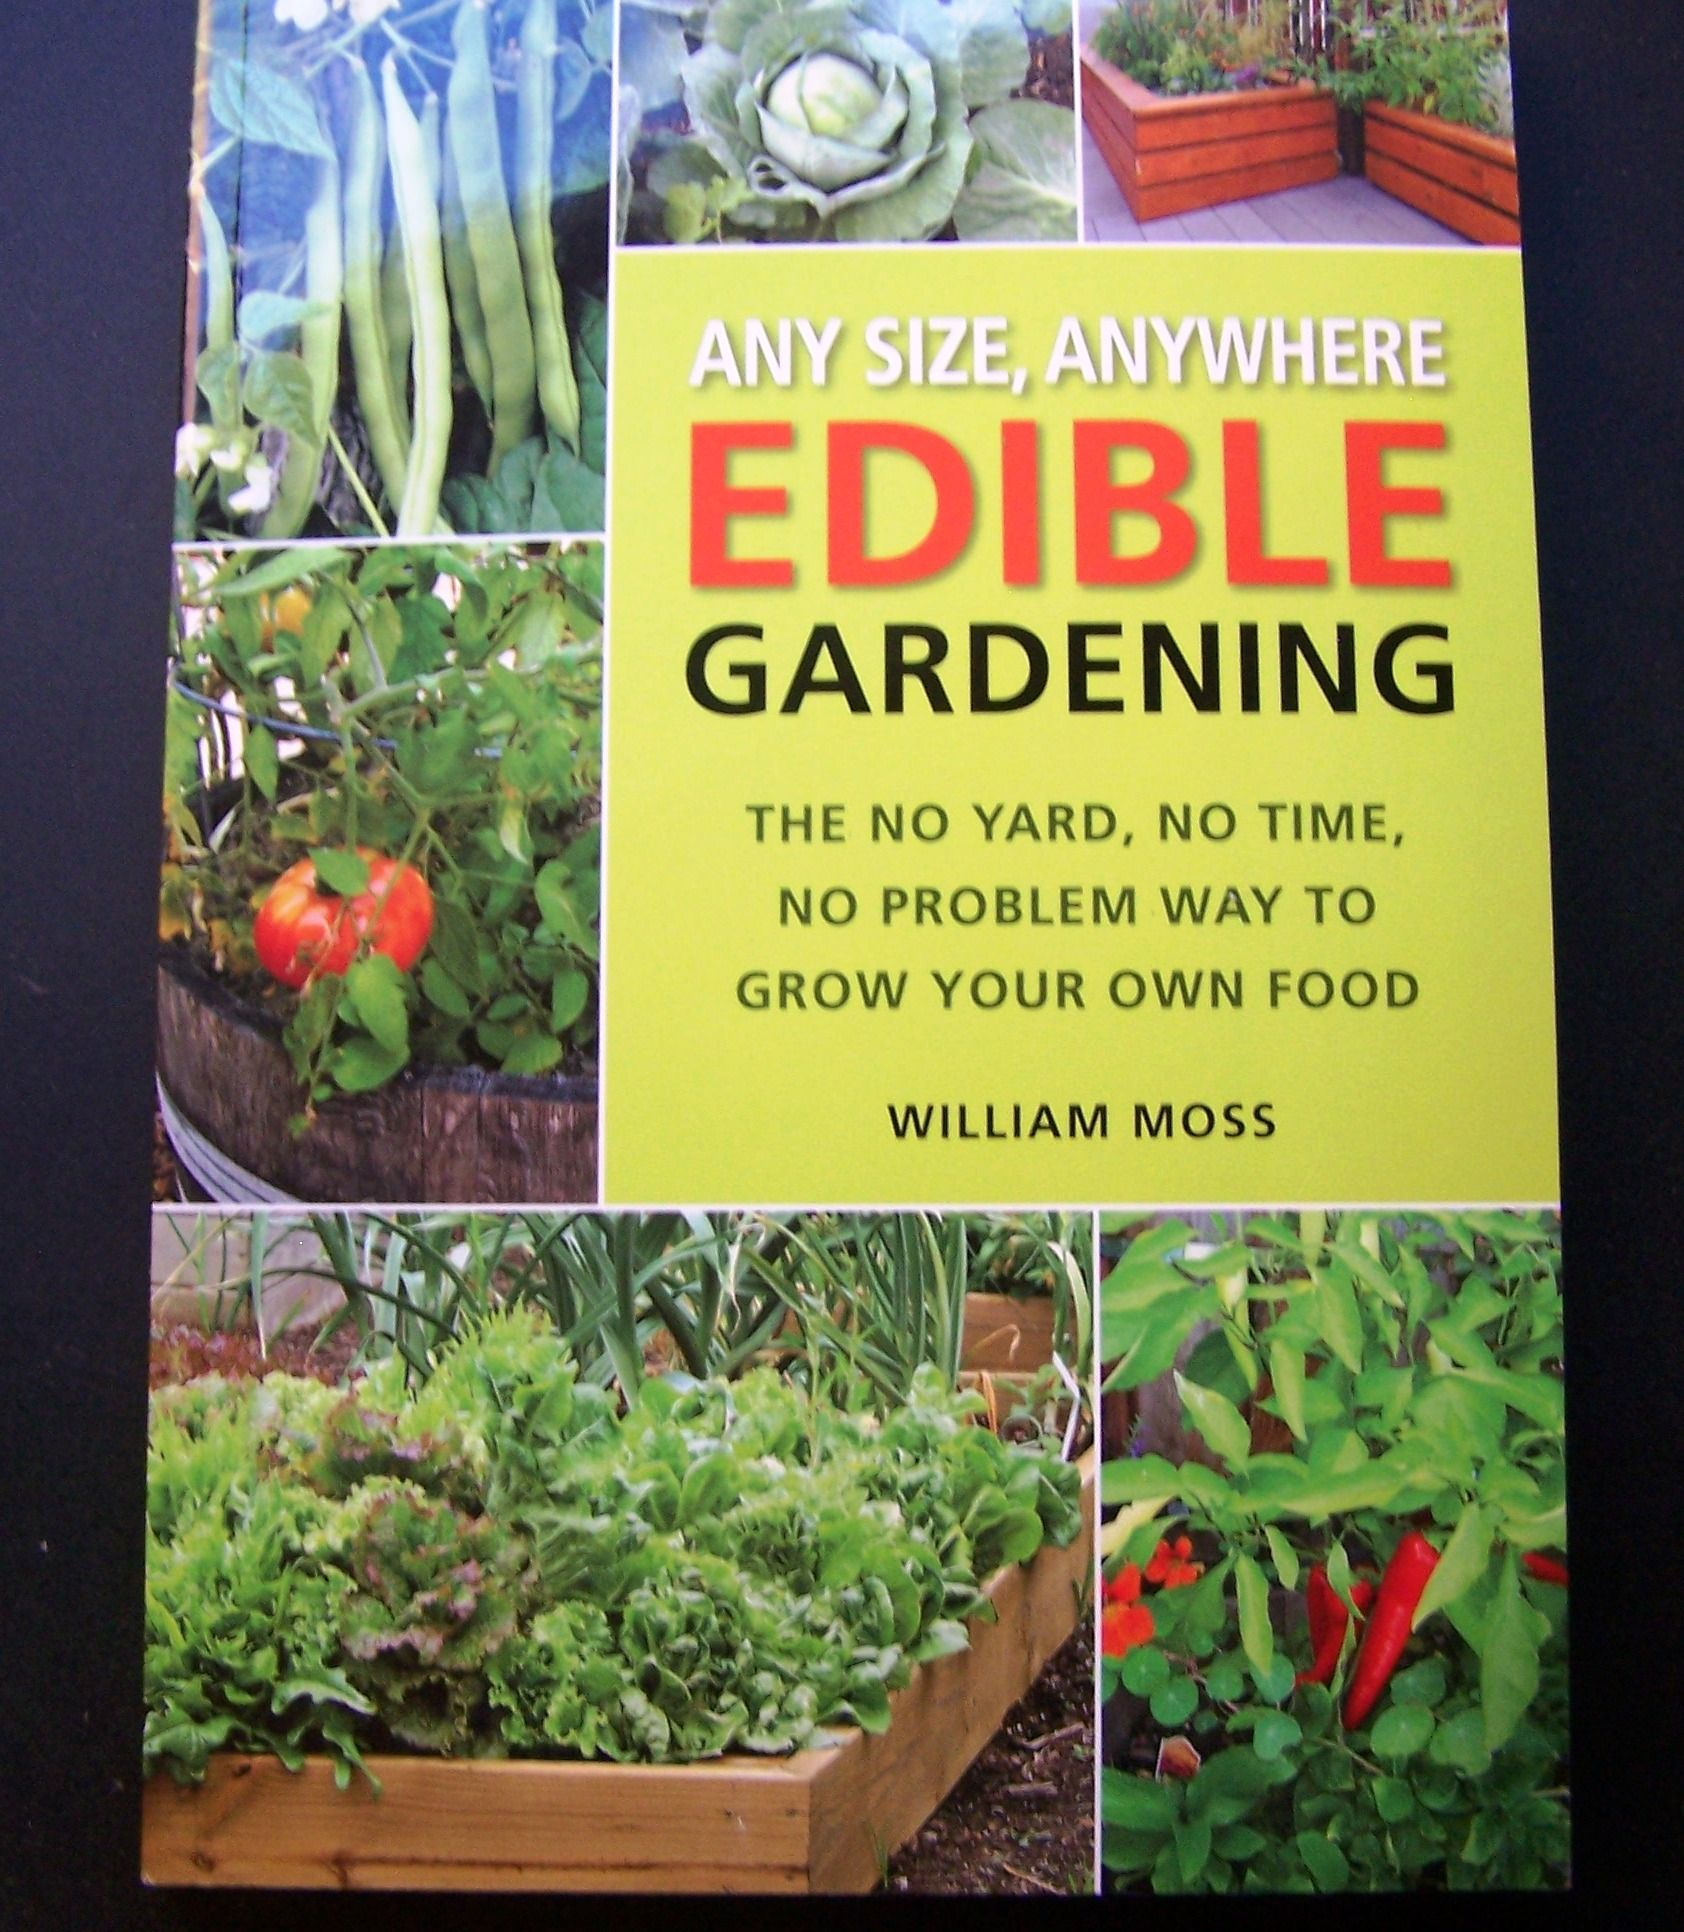 00d1dd894b755234ab864716719448af - Grow Food Anywhere The New Guide To Small Space Gardening